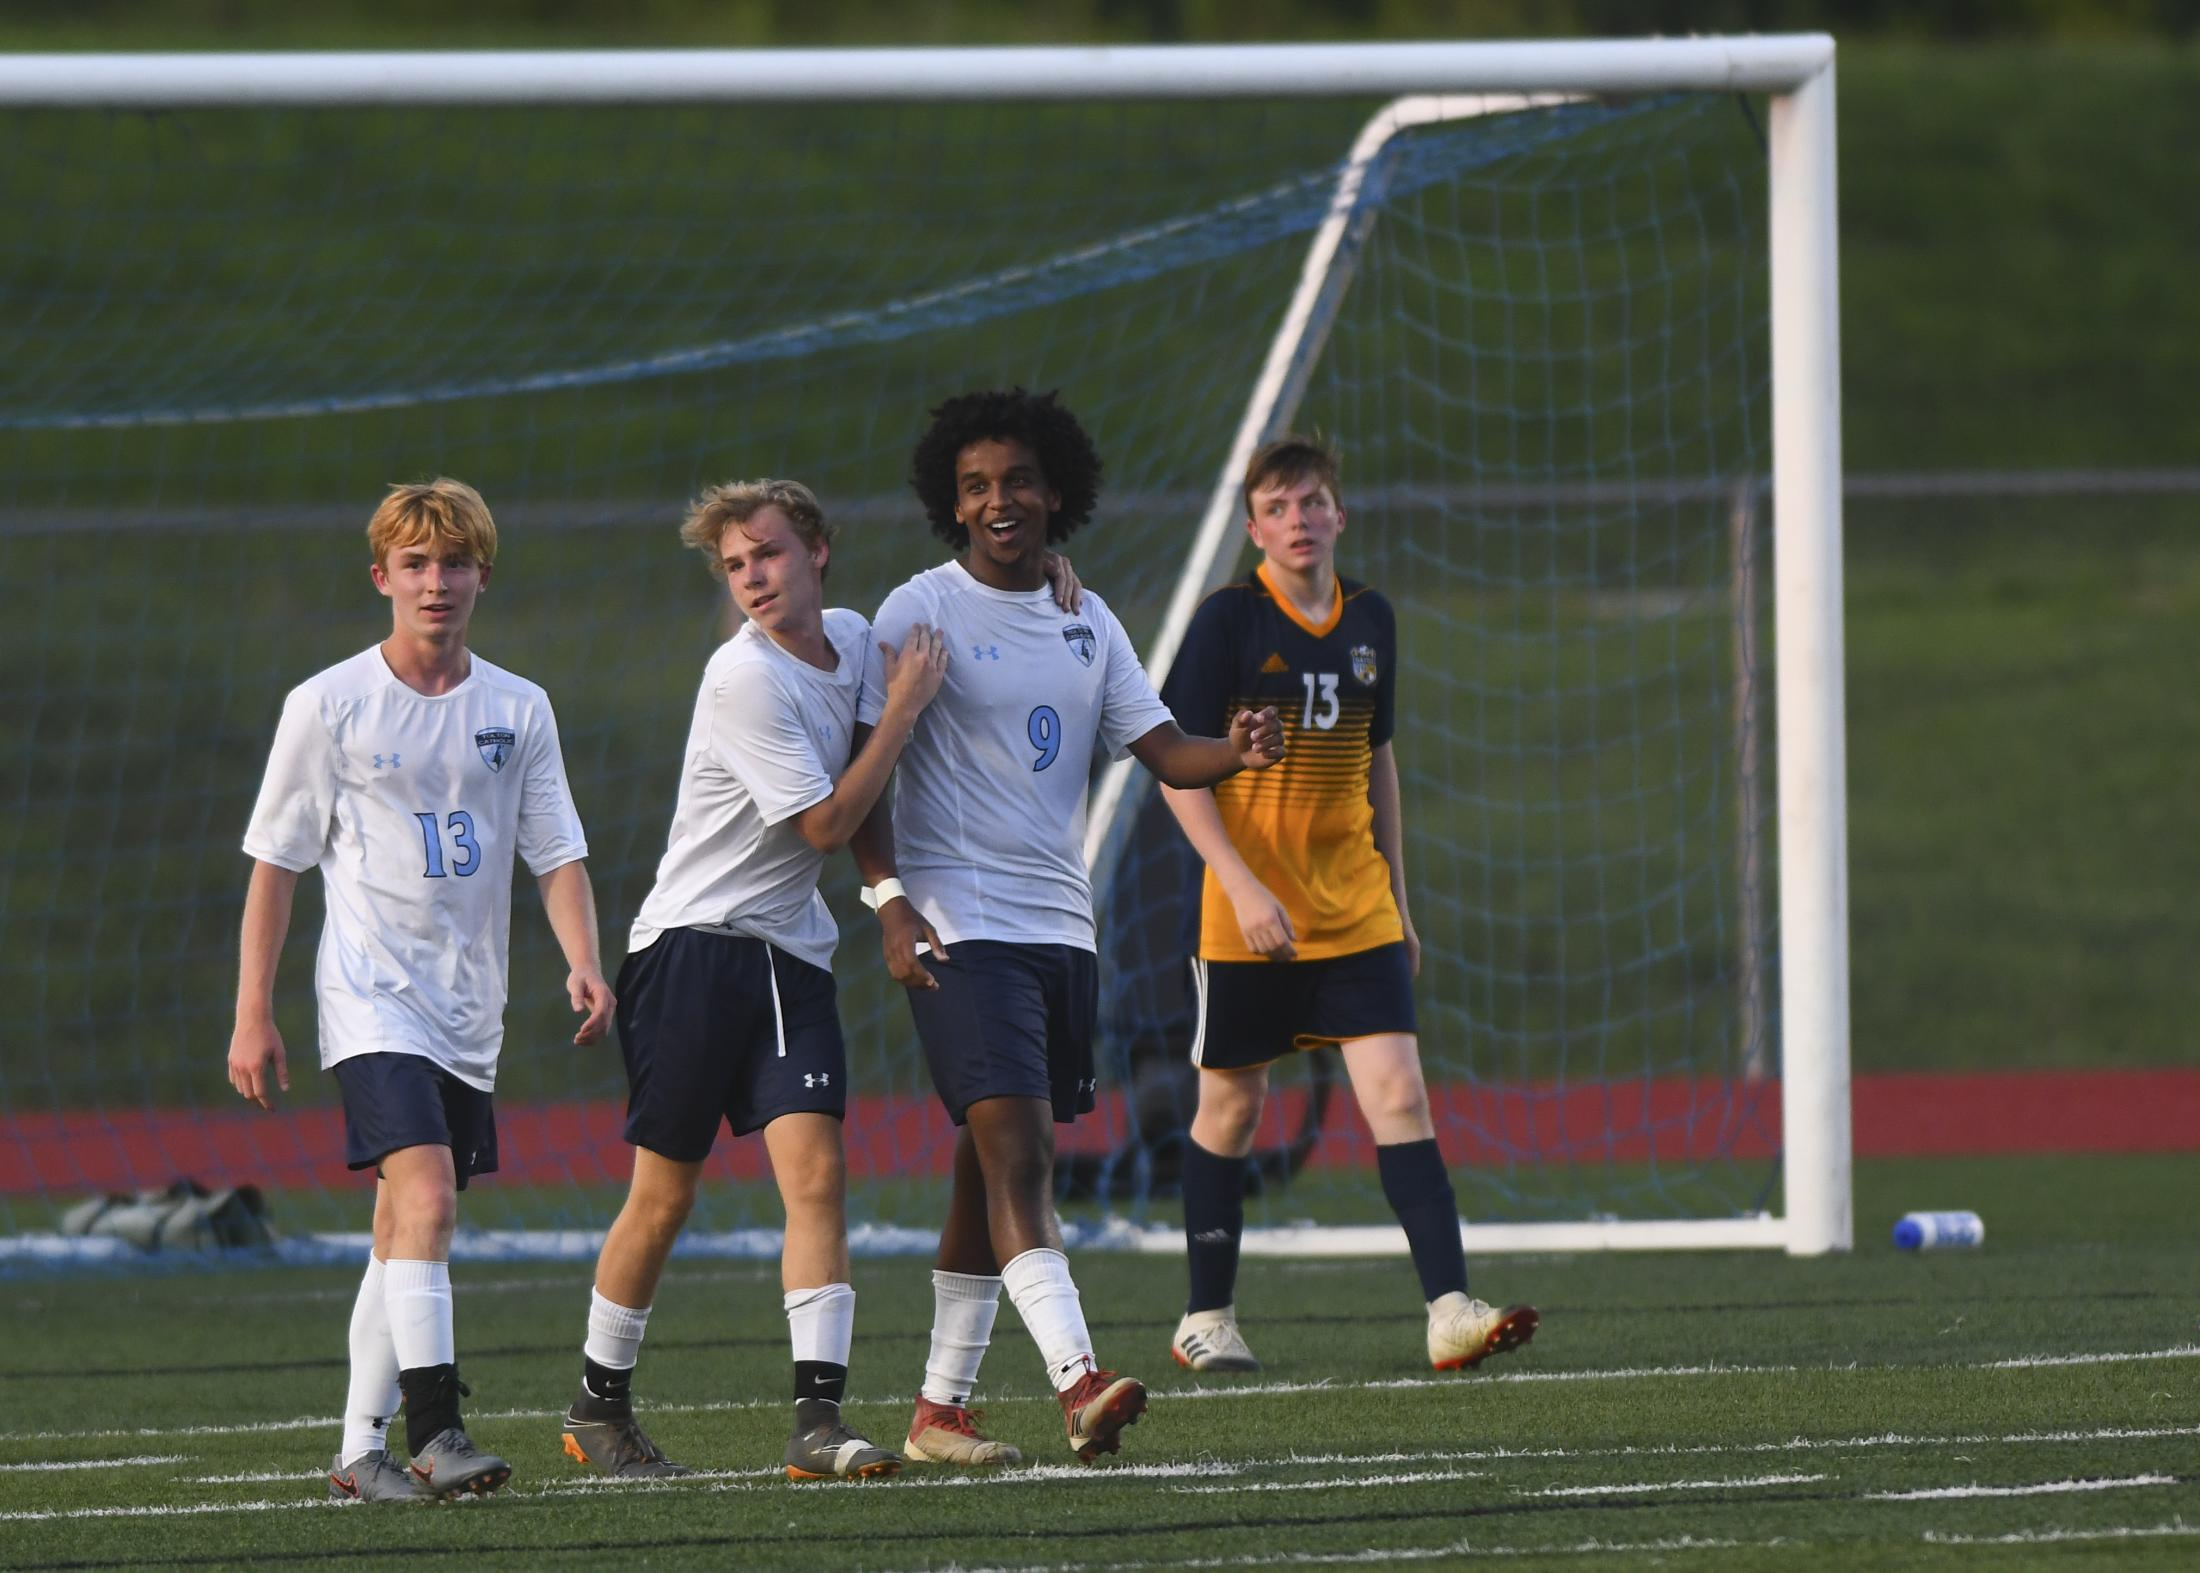 Tyler Stevens, Landon Petri and Lael Haile celebrate after Haile scored the second goal of in the Father Tolton Trailblazer's match against the Battle Spartans on Sept. 3, 2019 in Columbia. Tolton beat Battle 3-1.